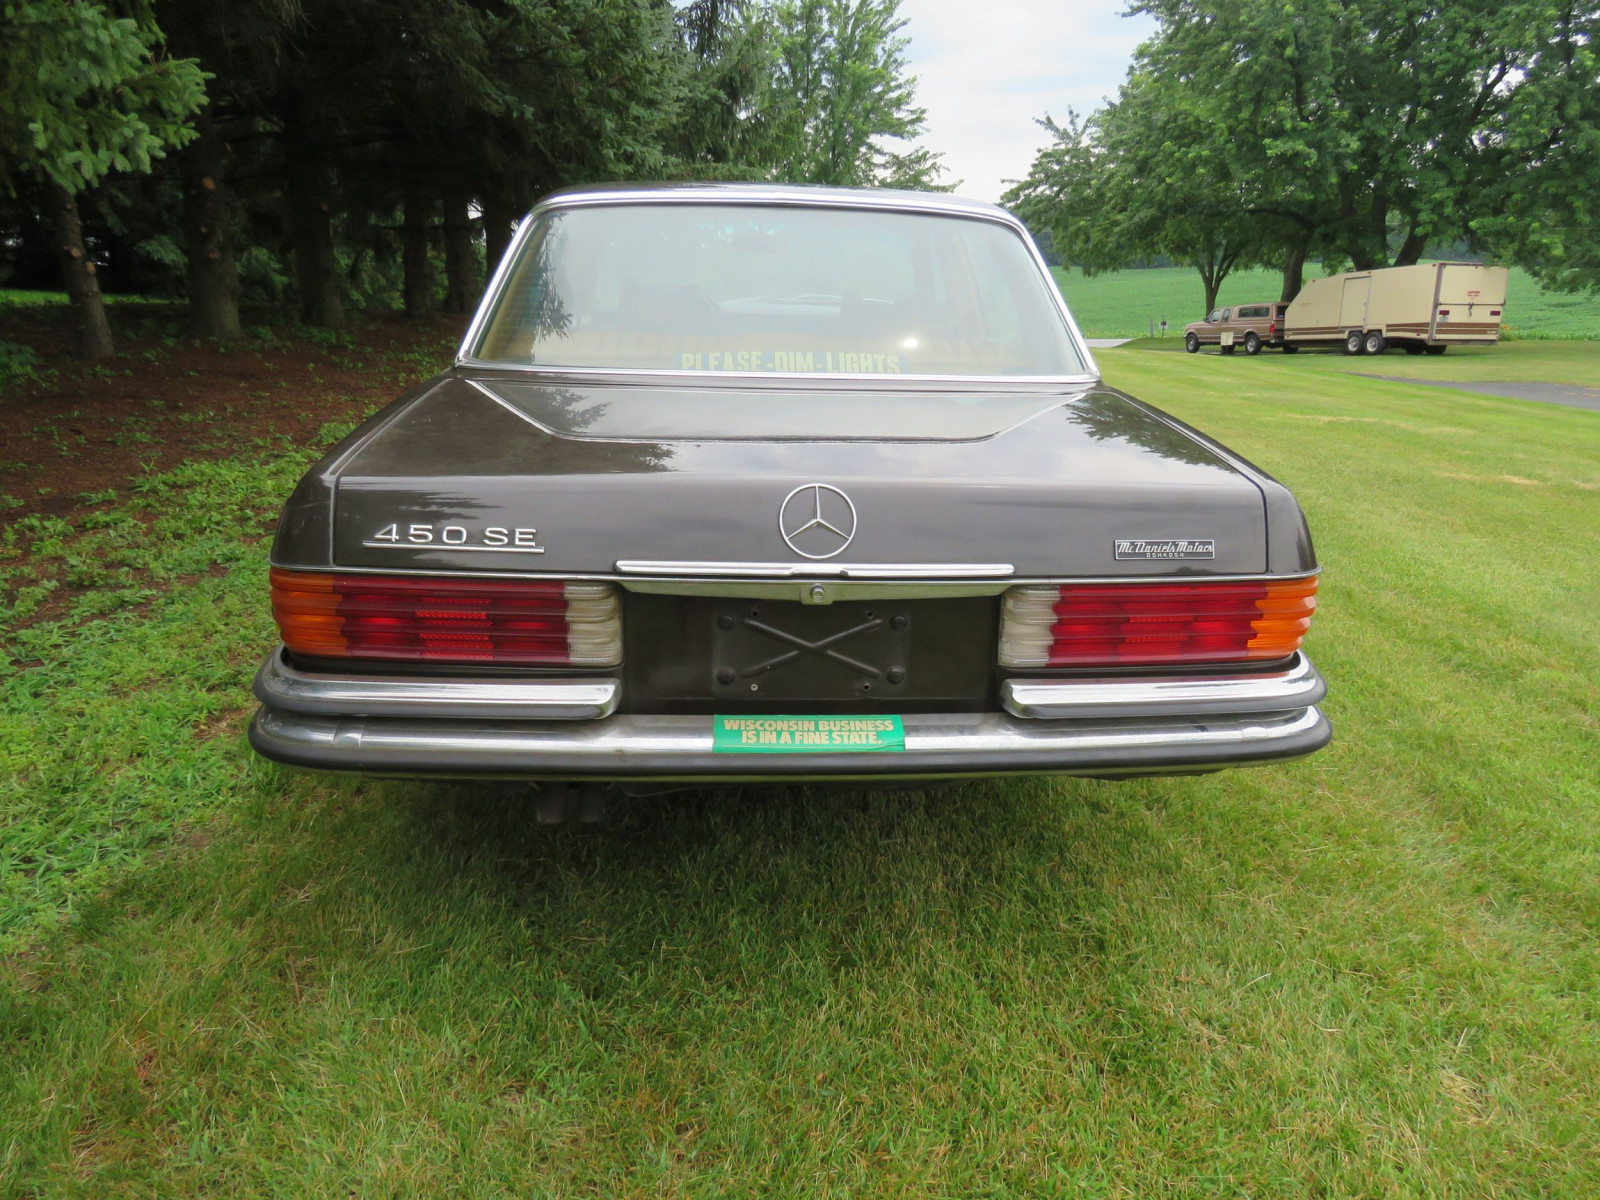 1973 Mercedes 450 SE 4dr Sedan - Image 5